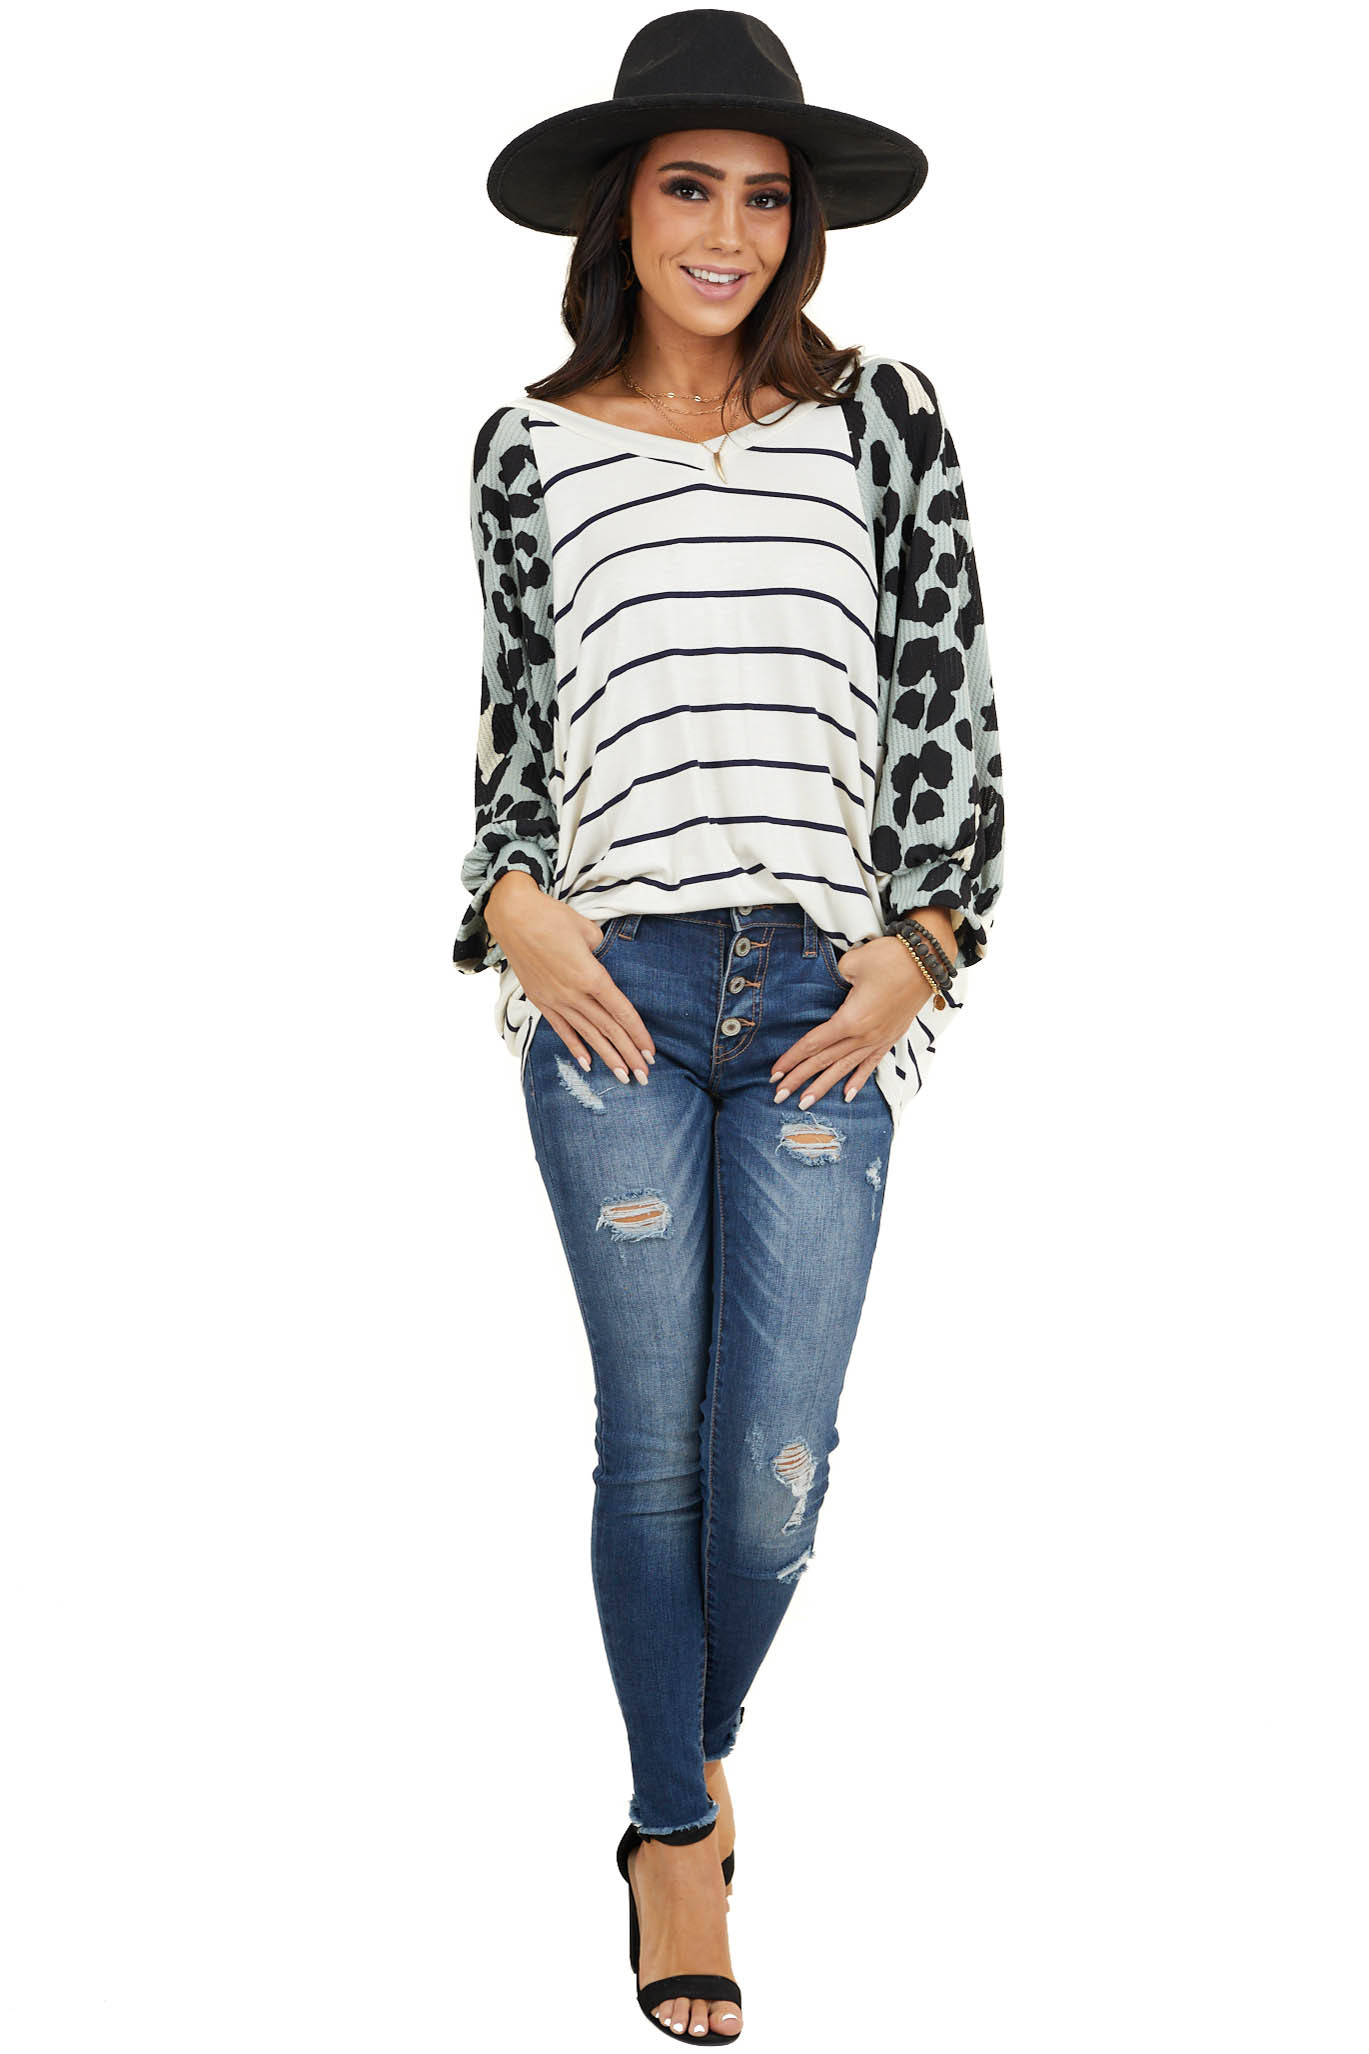 Ivory Striped Top with Teal Leopard Print Dolman Sleeves